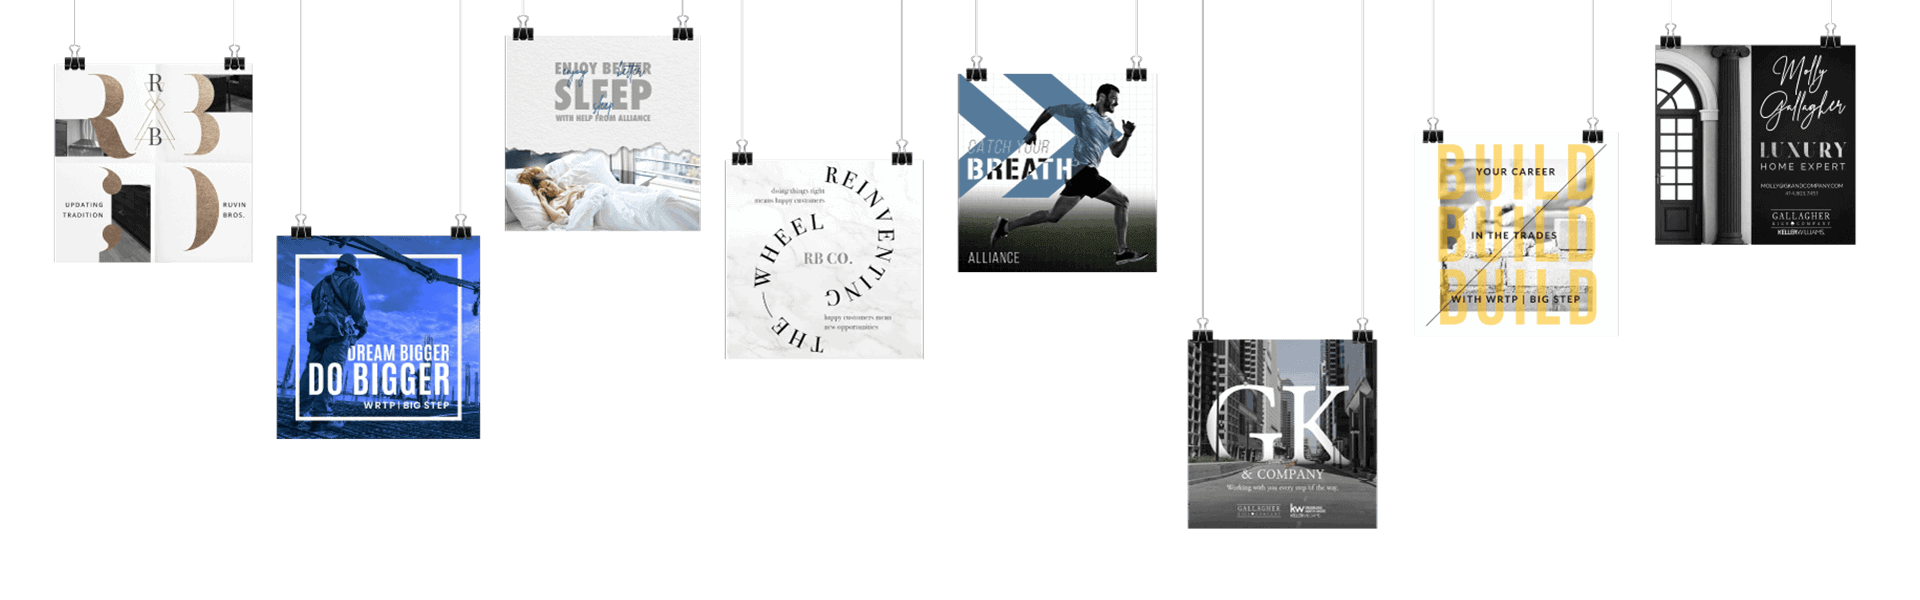 First Station Media | Milwaukee, WI Branding Agency | Website Design